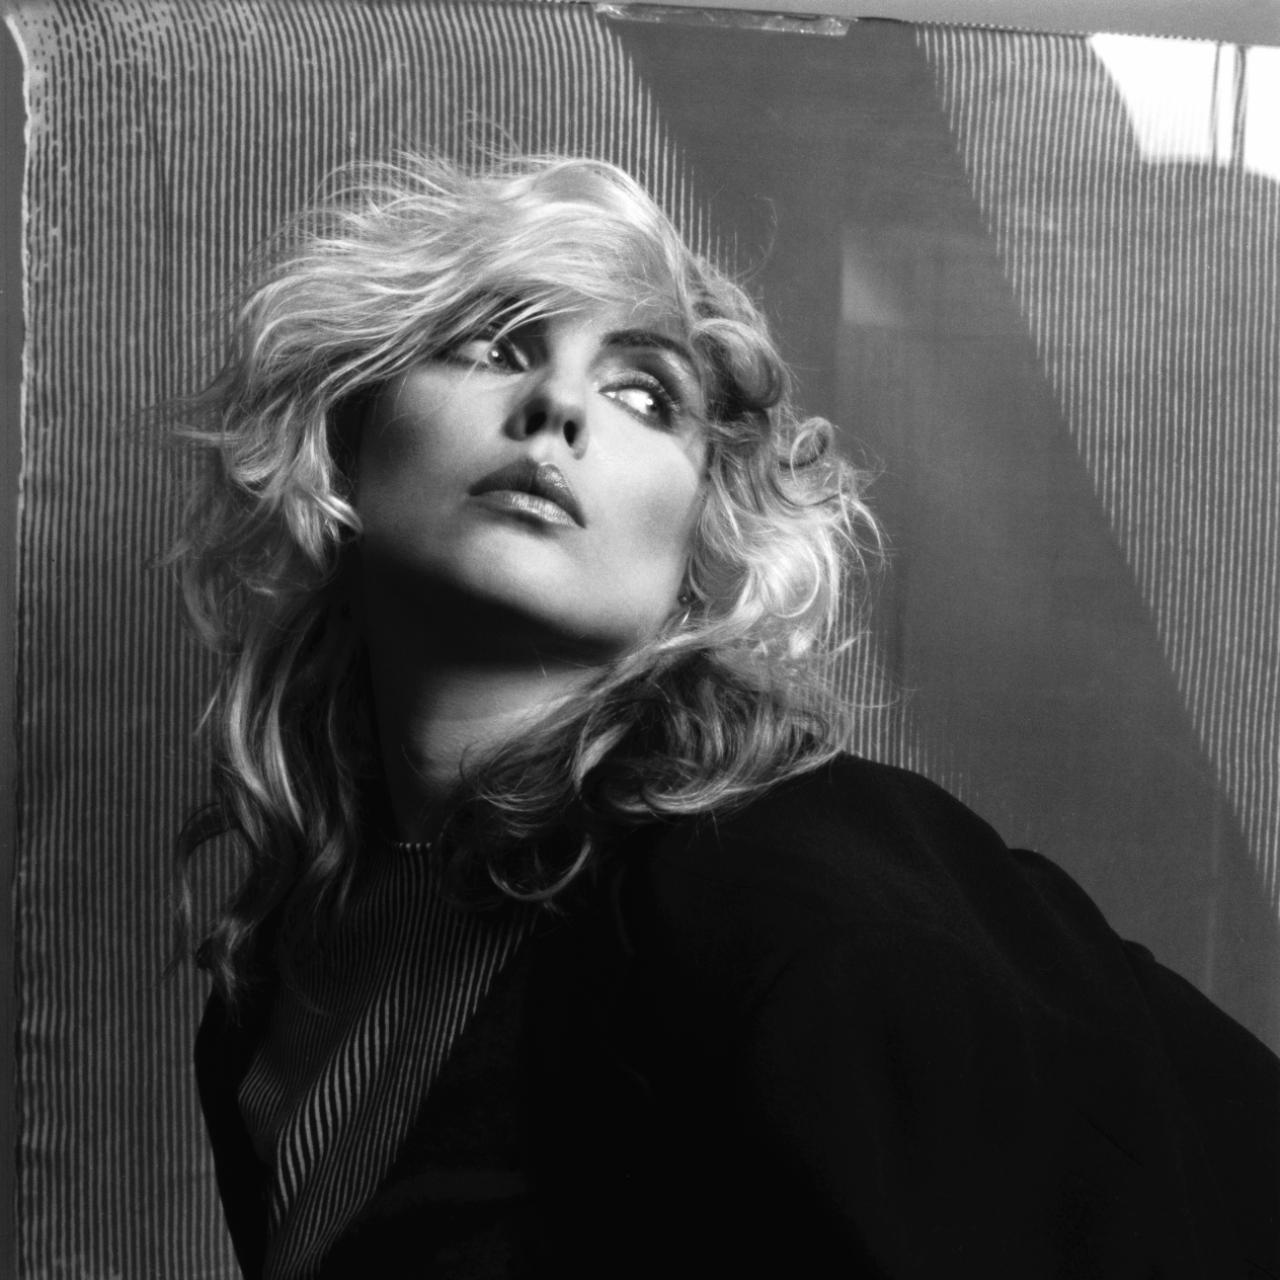 Debbie Harry photographed by Mick Rock